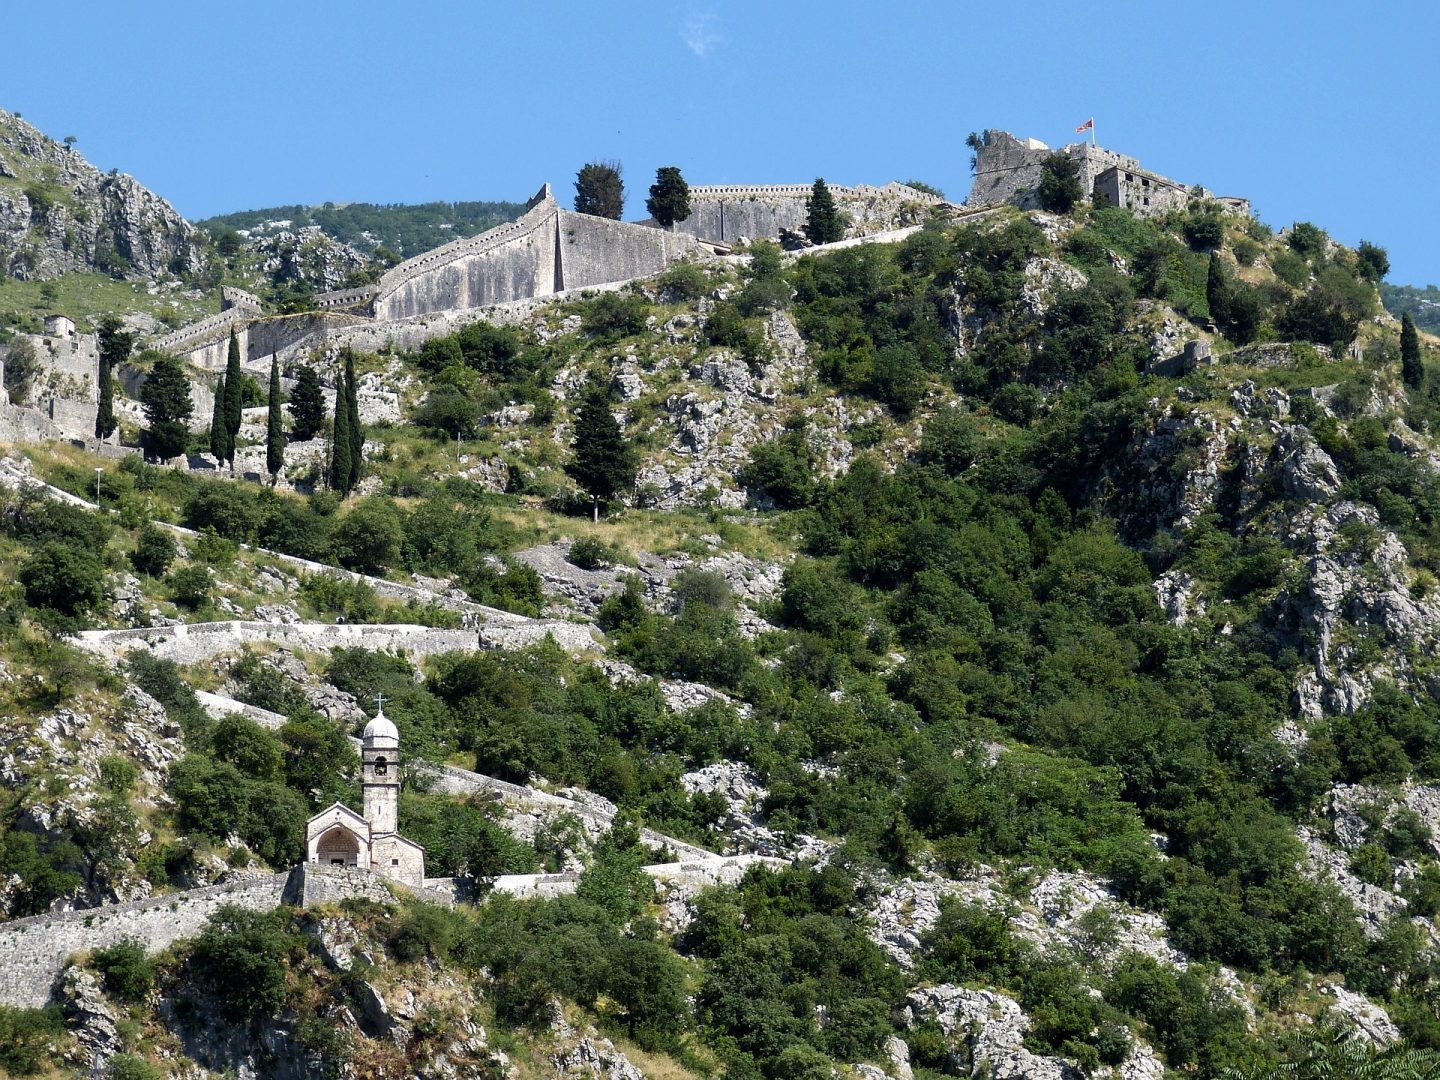 The city walls of Kotor, copyright Falco